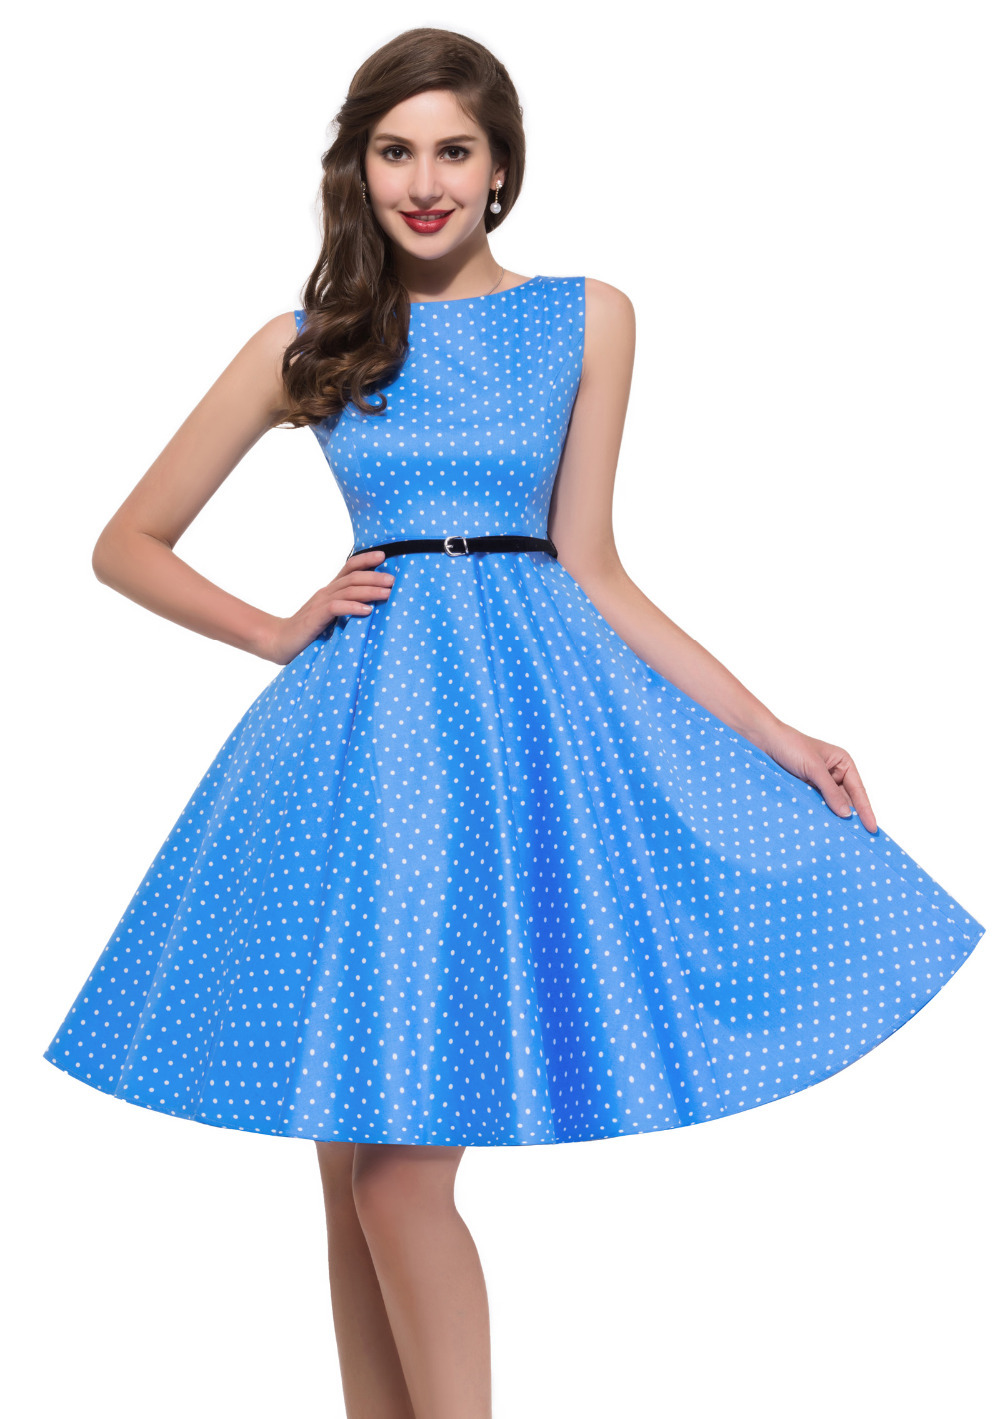 Buy retro dresses